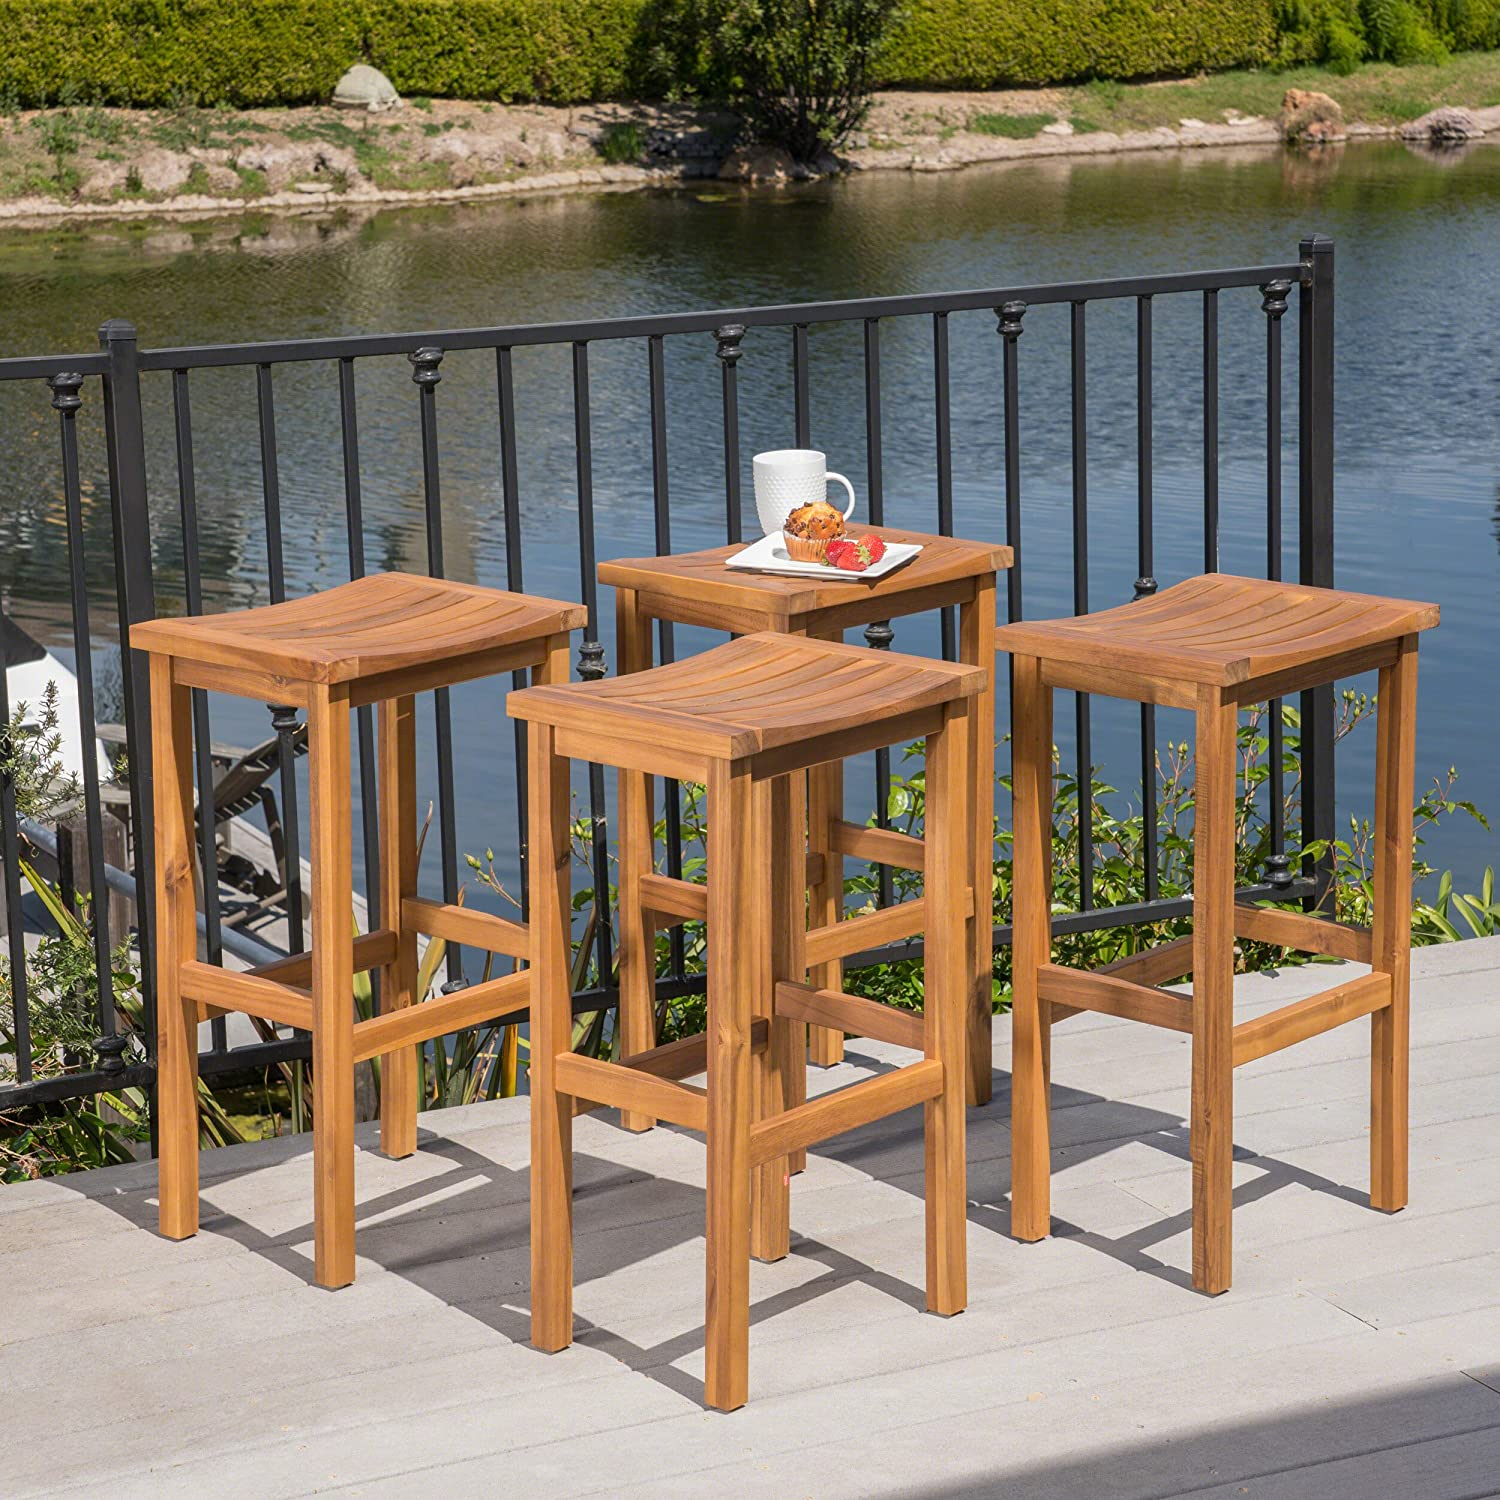 Christopher Knight Home 304158 Caribbean Wood Barstools, Natural Stained